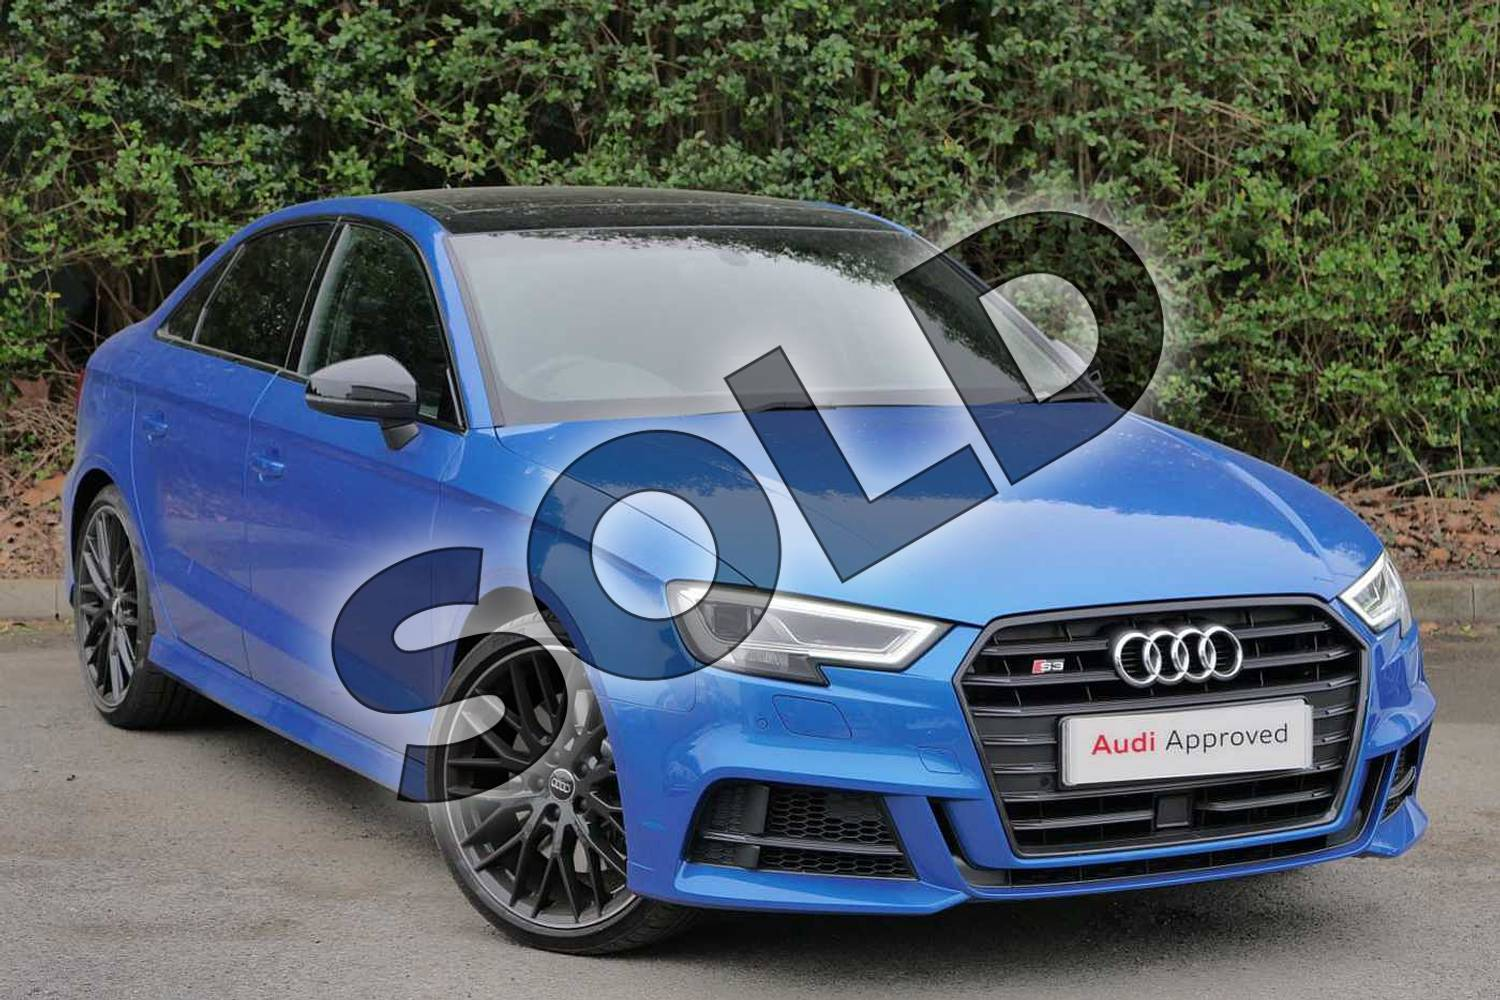 2019 Audi A3 Saloon S3 TFSI 300 Quattro Black Edition 4dr S Tronic in Ara Blue Crystal at Worcester Audi